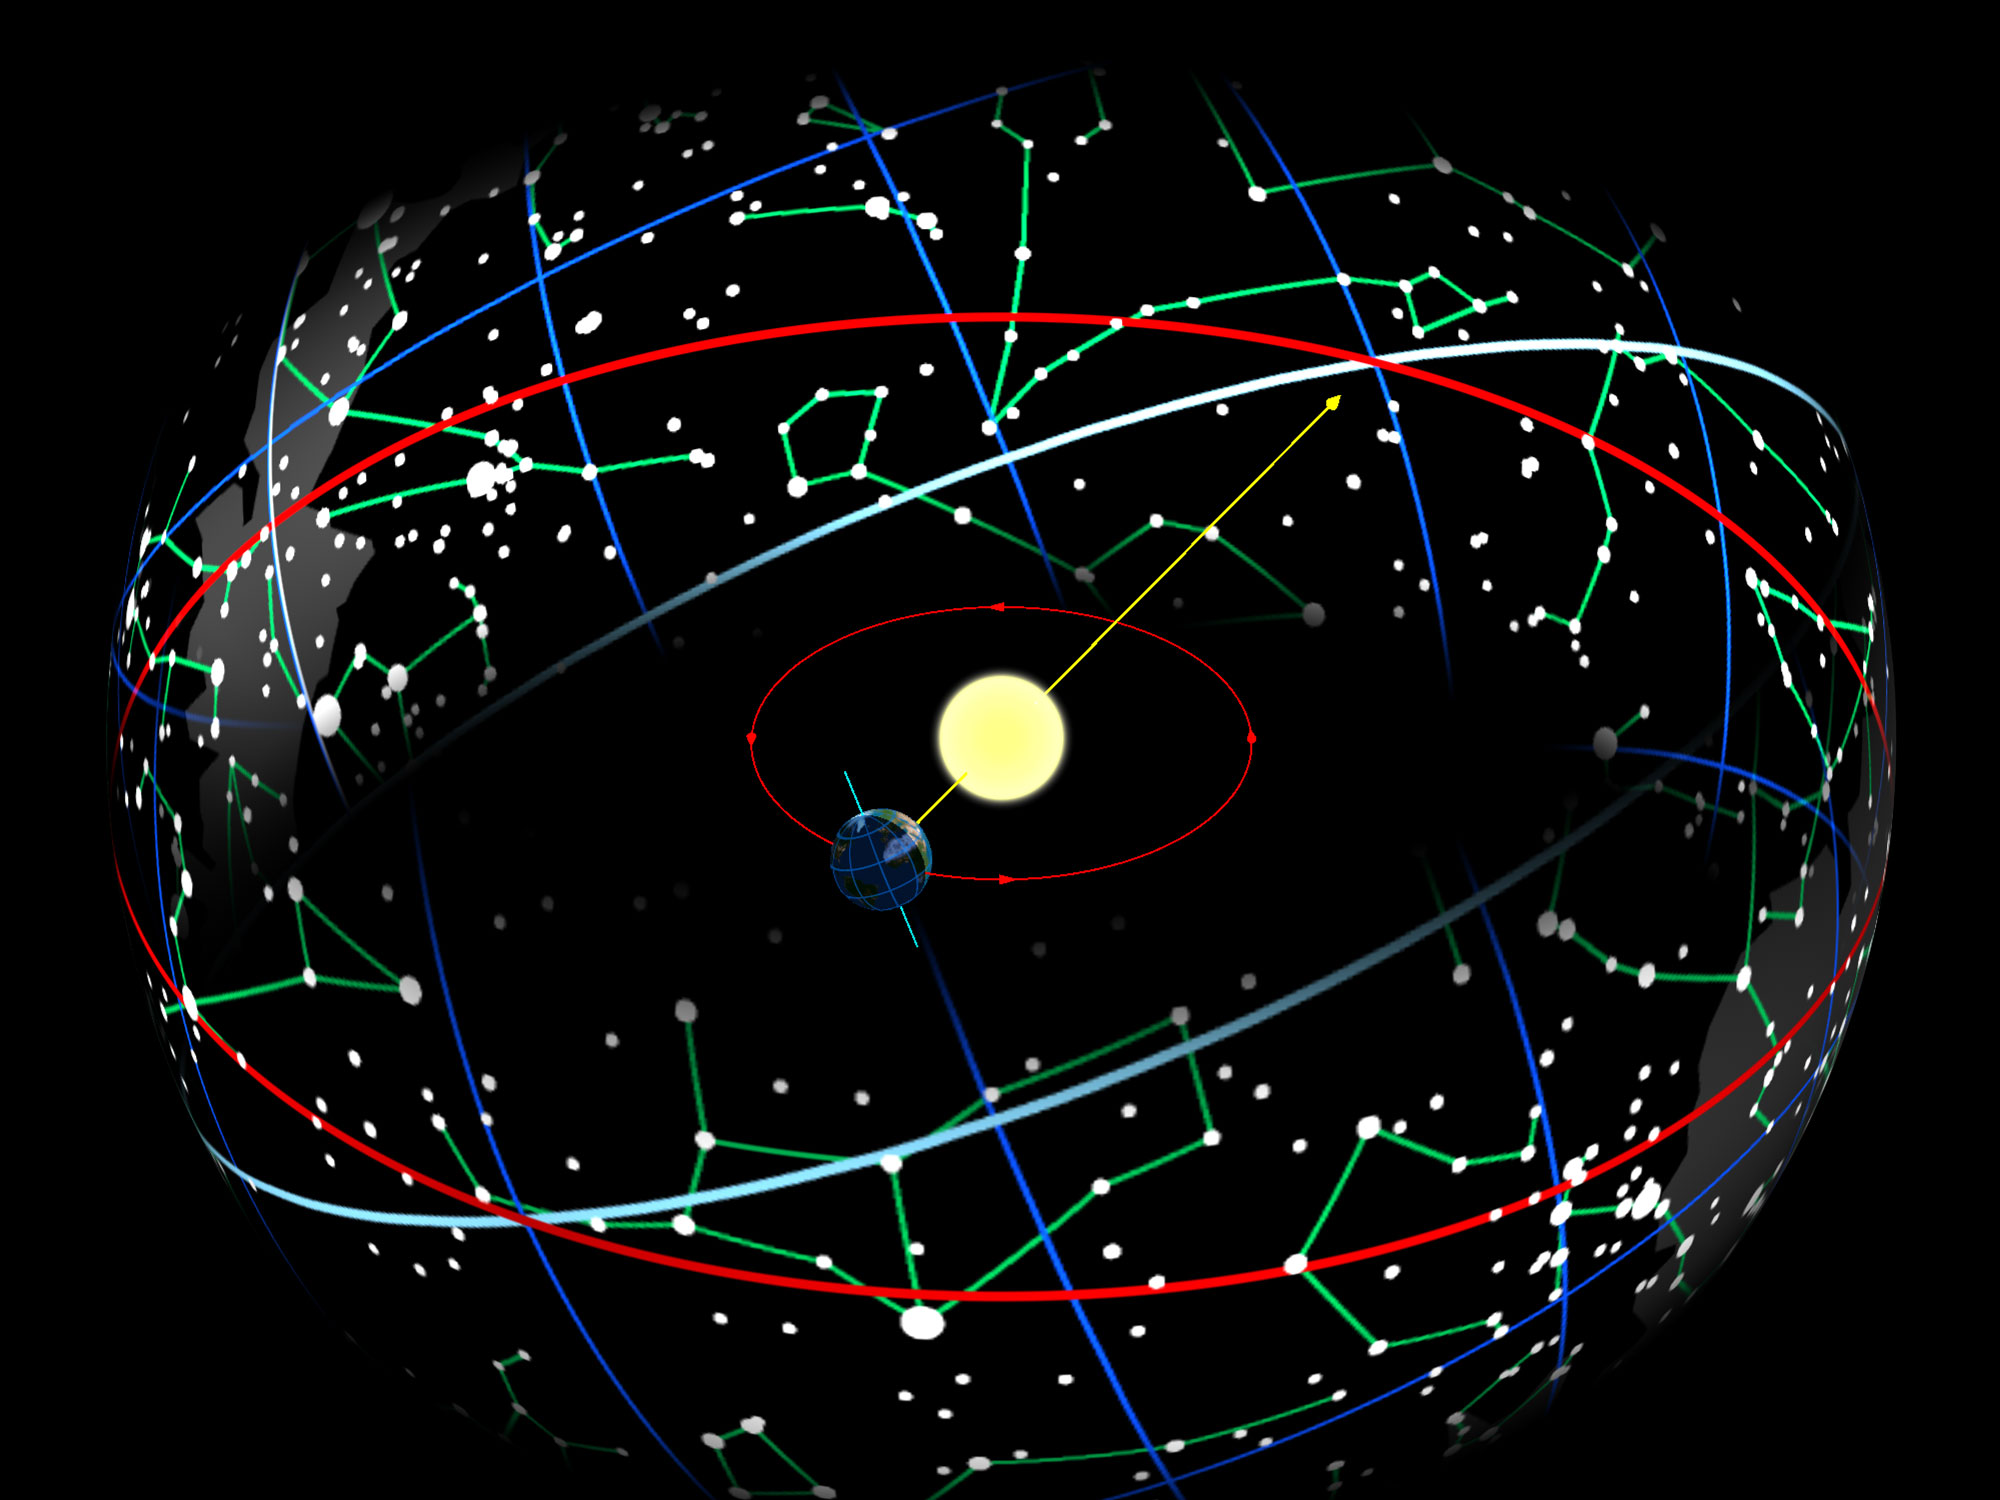 Diagram showing the Earth, sun, the ecliptic, and the projected equator on the constellations.